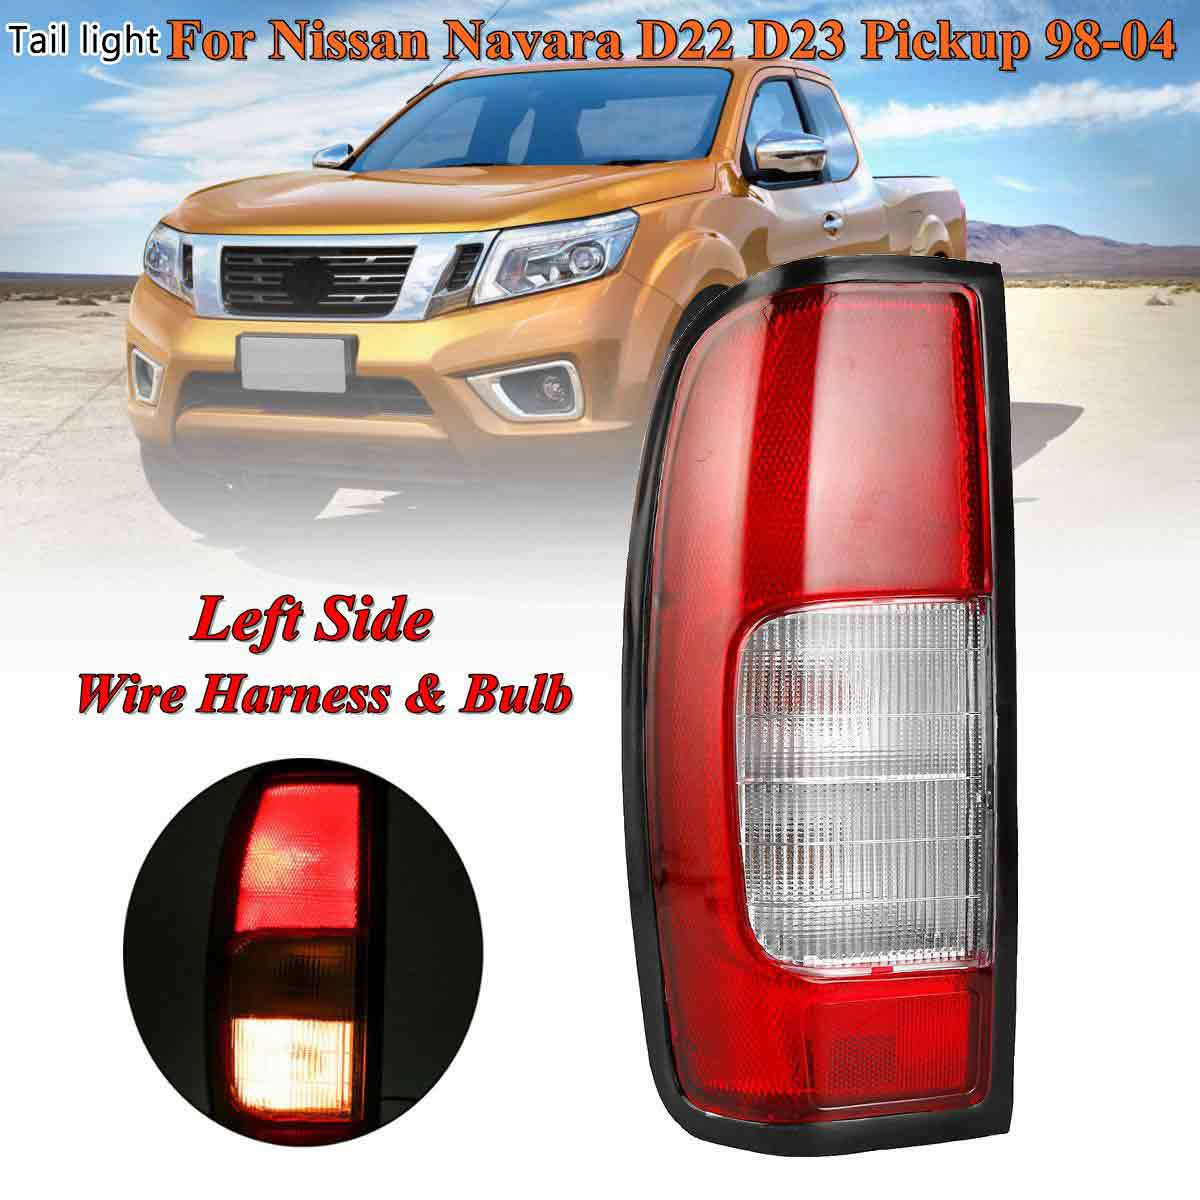 Left Right Rear Tail Brake Light Lamp With Bulb wire harness for Nissan Navara D22 D23 Pickup 1998 1999 2000-2004 RLN026-UK-L